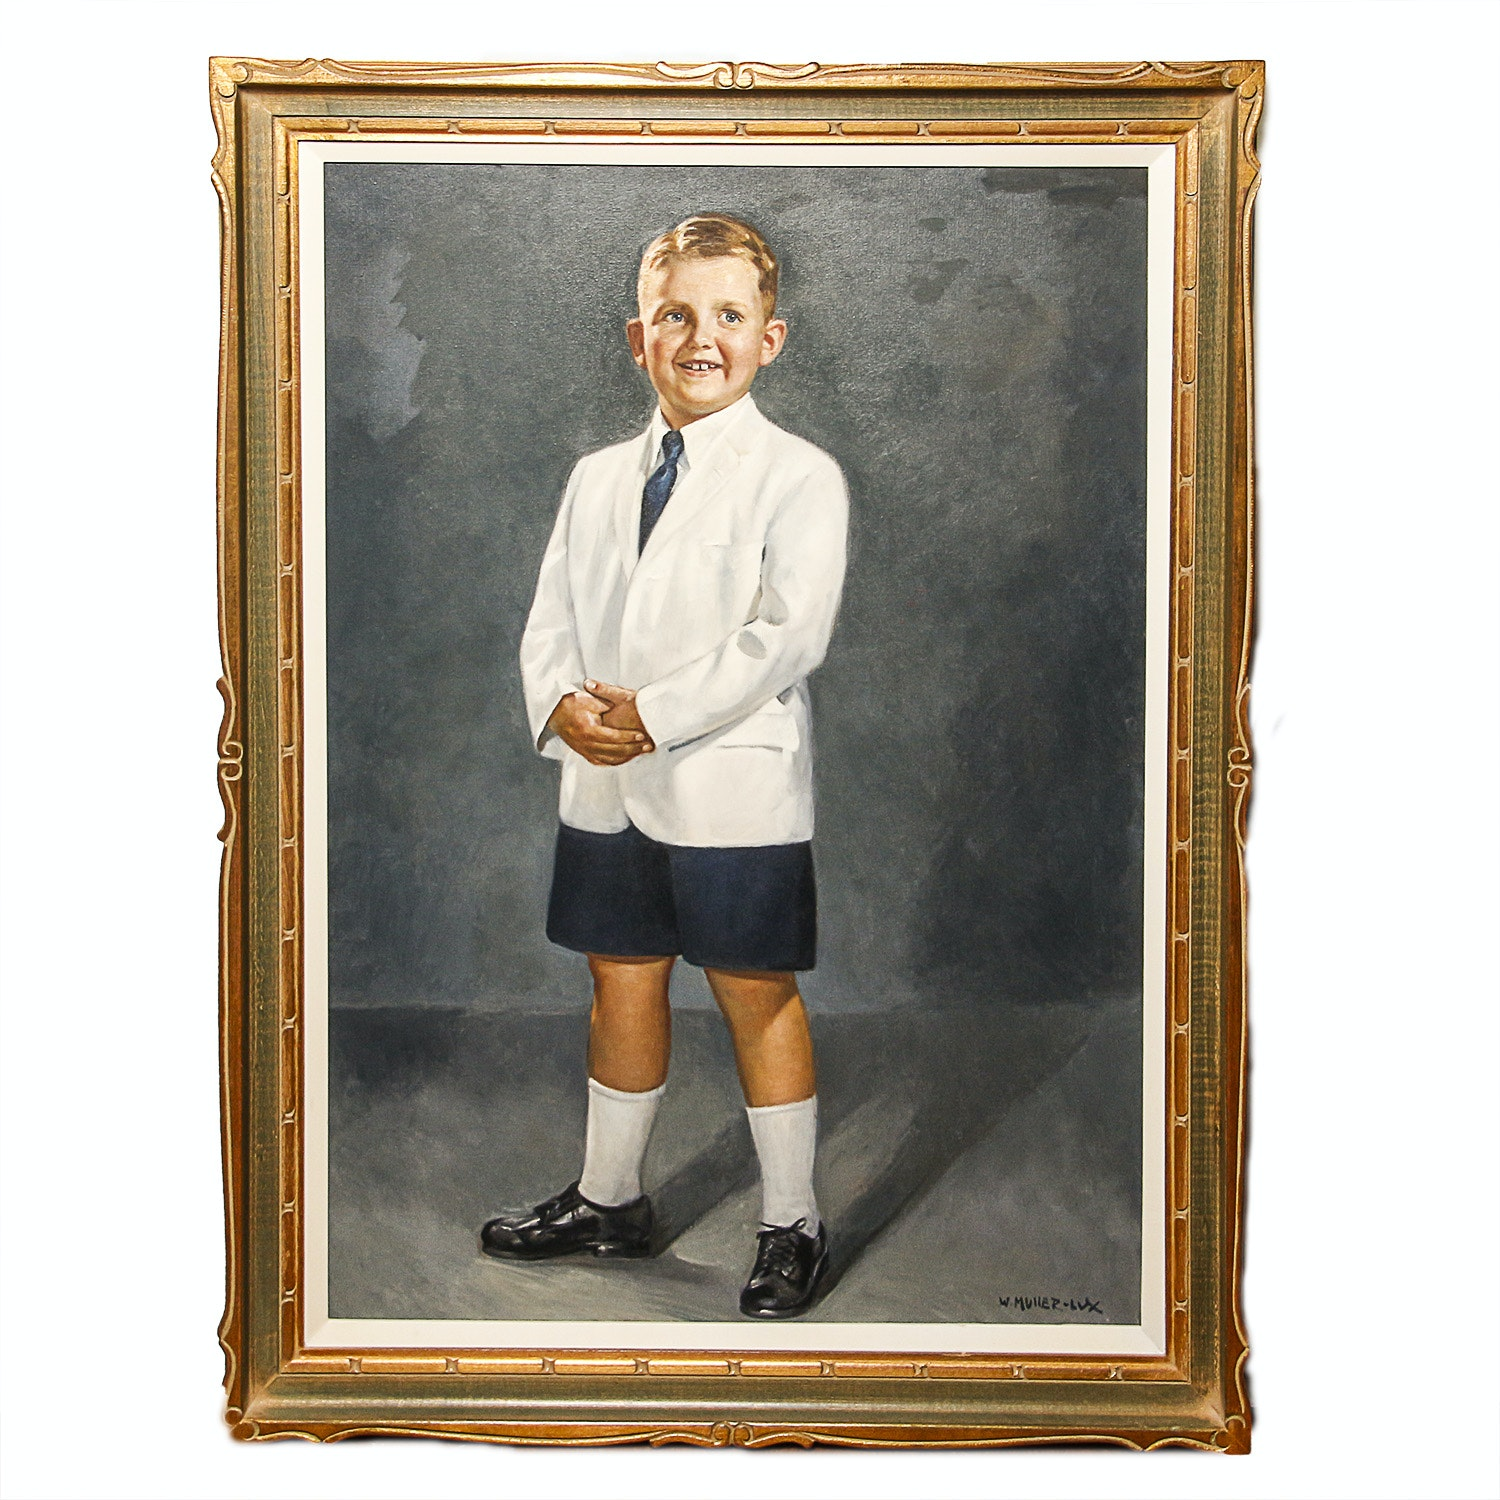 Original Oil Painting of a Young Boy by W. Muller-Lux